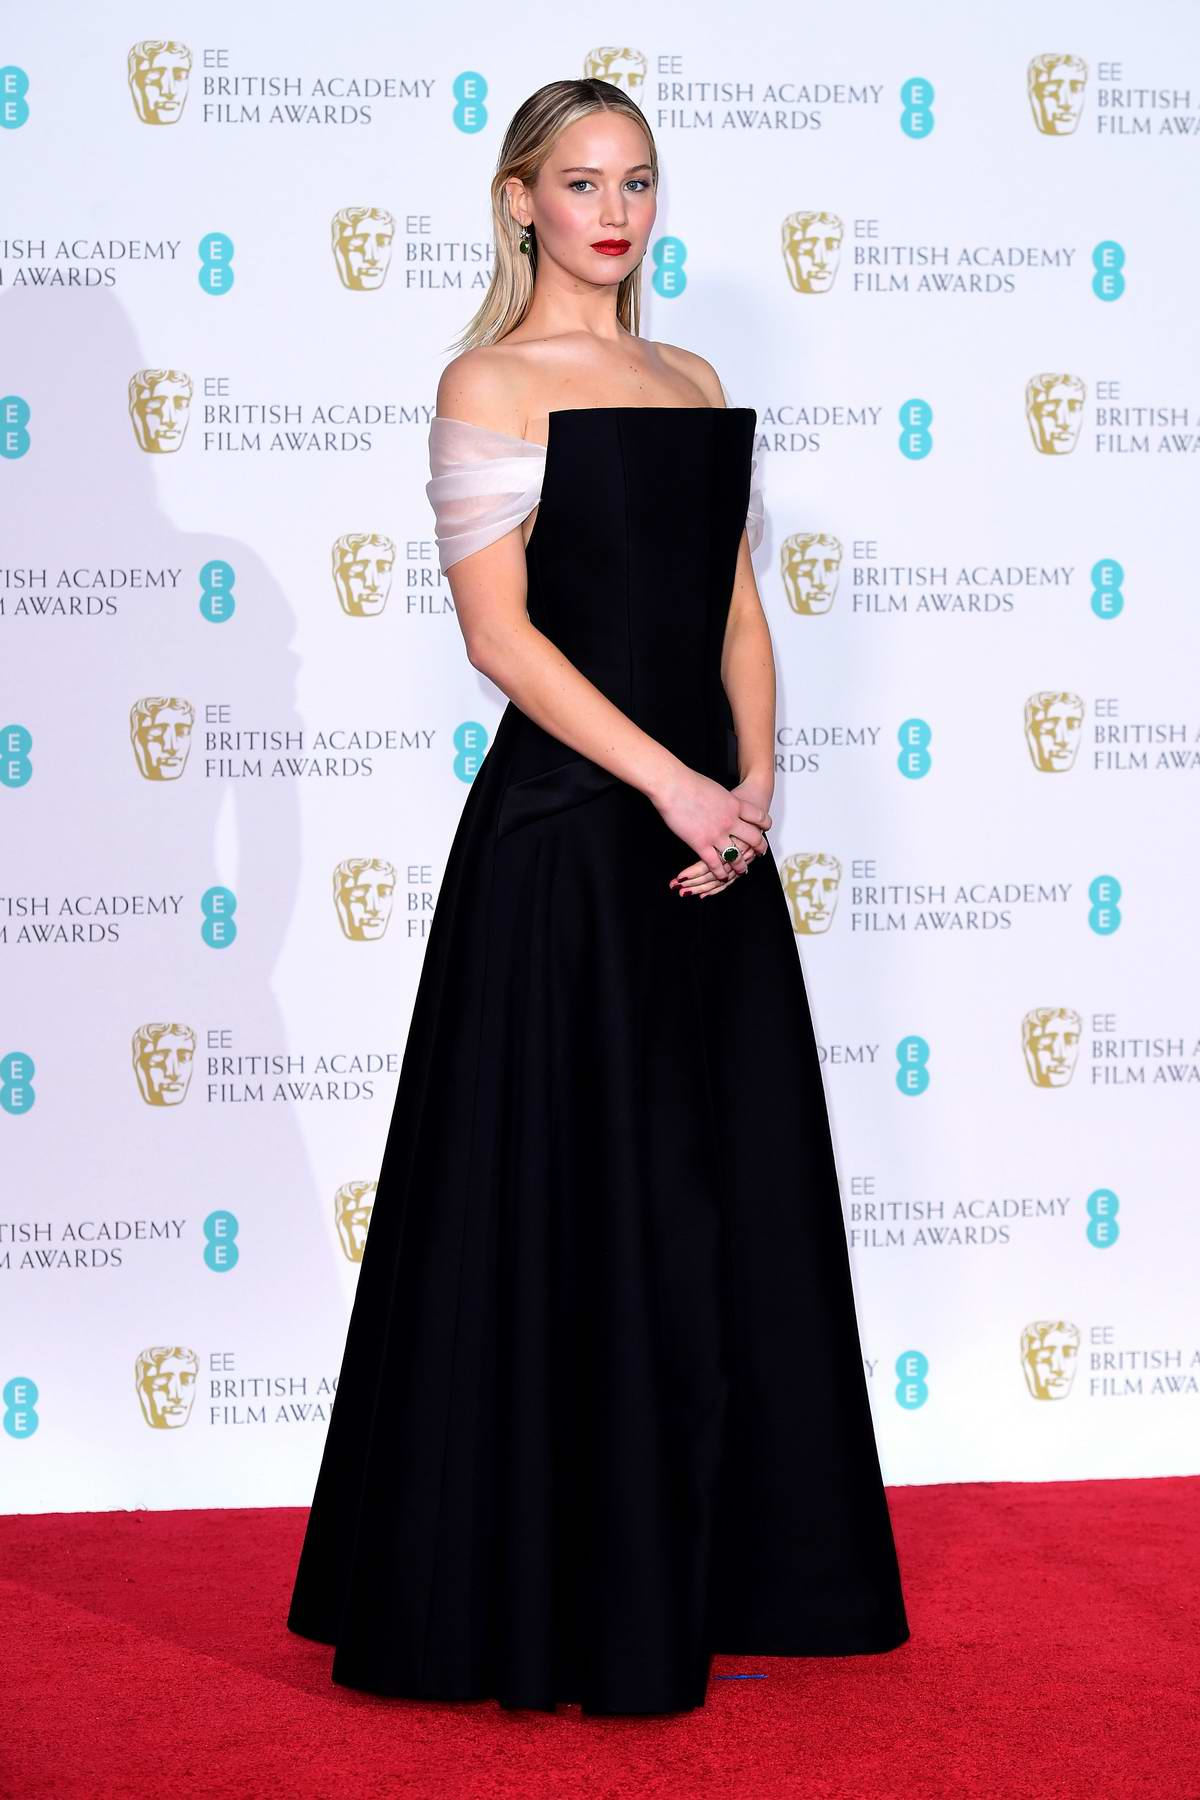 Jennifer Lawrence attends 71st British Academy Film Awards at Royal Albert Hall in London